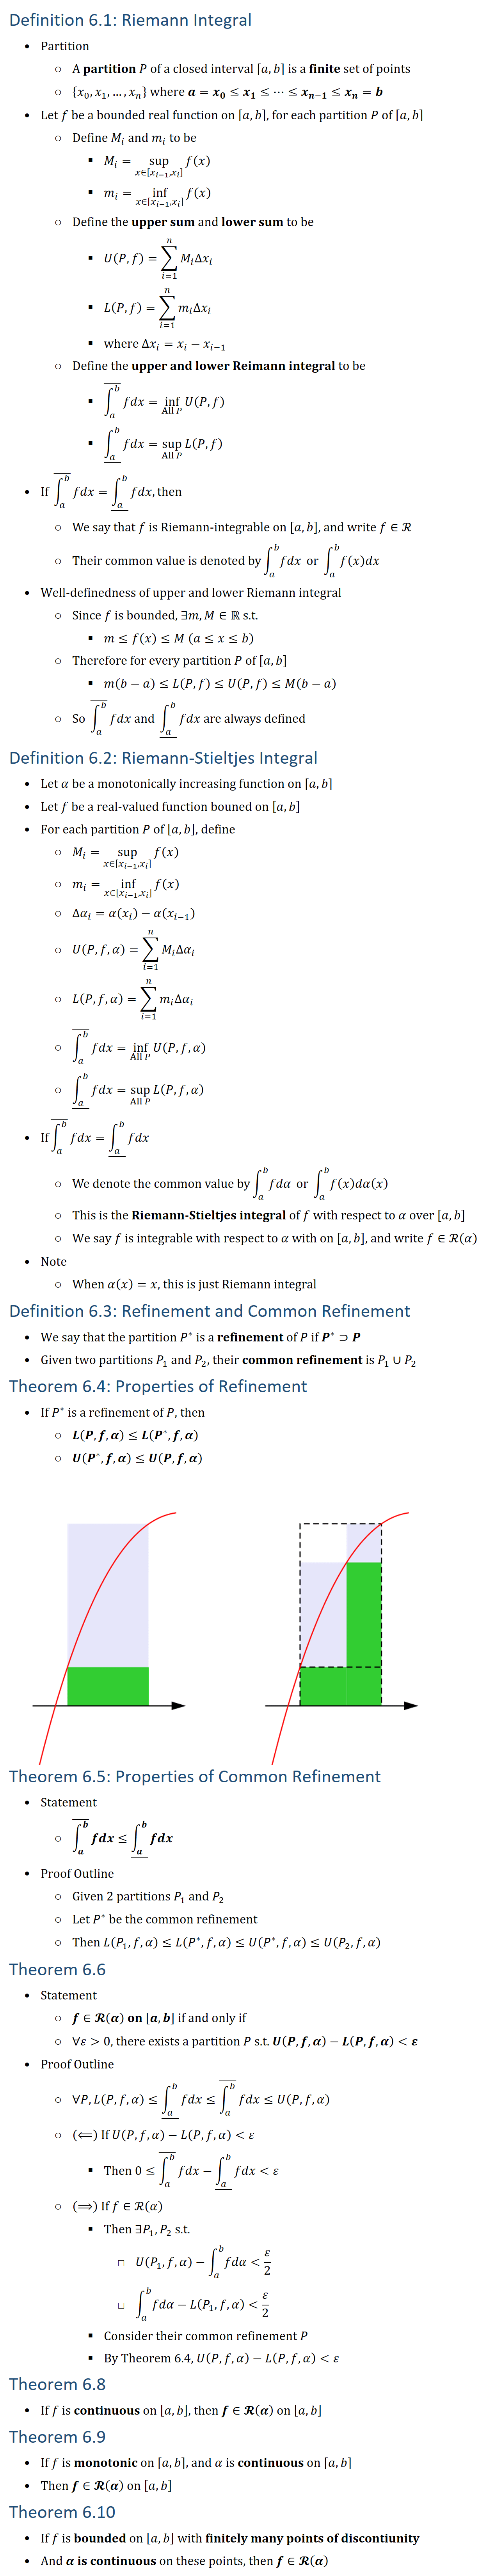 Definition 6.1: Riemann Integral • Partition ○ A partition P of a closed interval [a,b] is a finite set of points ○ {x_0,x_1,…,x_n } where a=x_0≤x_1≤…≤x_(n−1)≤x_n=b • Let f be a bounded real function on [a,b], for each partition P of [a,b] ○ Define M_i and m_i to be § M_i=sup┬(x∈[x_(i−1),x_i ] )⁡f(x) § m_i=inf┬(x∈[x_(i−1),x_i ] )⁡f(x) ○ Define the upper sum and lower sum to be § U(P,f)=∑_(i=1)^n▒〖M_i Δx_i 〗 § L(P,f)=∑_(i=1)^n▒〖m_i Δx_i 〗 § where Δx_i=x_i−x_(i−1) ○ Define the upper and lower Reimann integral to be § (∫_a^b▒ ) ̅fdx=inf┬(All P)⁡U(P,f) § ▁(∫_a^b▒ ) fdx=sup┬(All P)⁡L(P,f) • If (∫_a^b▒ ) ̅fdx=▁(∫_a^b▒ ) fdx, then ○ We say that f is Riemann\-integrable on [a,b], and write f∈R ○ Their common value is denoted by∫_a^b▒fdx or ∫_a^b▒f(x)dx • Well-definedness of upper and lower Riemann integral ○ Since f is bounded, ∃m,M∈R s.t. § m≤f(x)≤M (a≤x≤b) ○ Therefore for every partition P of [a,b] § m(b−a)≤L(P,f)≤U(P,f)≤M(b−a) ○ So (∫_a^b▒ ) ̅fdx and ▁(∫_a^b▒ ) fdx are always defined Definition 6.2: Riemann-Stieltjes Integral • Let α be a monotonically increasing function on [a,b] • Let f be a real-valued function bouned on [a,b] • For each partition P of [a,b], define ○ M_i=sup┬(x∈[x_(i−1),x_i ] )⁡f(x) ○ m_i=inf┬(x∈[x_(i−1),x_i ] )⁡f(x) ○ Δα_i=α(x_i )−α(x_(i−1) ) ○ U(P,f,α)=∑_(i=1)^n▒〖M_i Δα_i 〗 ○ L(P,f,α)=∑_(i=1)^n▒〖m_i Δα_i 〗 ○ (∫_a^b▒ ) ̅fdx=inf┬(All P)⁡U(P,f,α) ○ ▁(∫_a^b▒ ) fdx=sup┬(All P)⁡L(P,f,α) • If(∫_a^b▒ ) ̅fdx=▁(∫_a^b▒ ) fdx ○ We denote the common value by∫_a^b▒fdα or ∫_a^b▒f(x)dα(x) ○ This is the Riemann-Stieltjes integral of f with respect to α over [a,b] ○ We say f is integrable with respect to α with on [a,b], and write f∈R(α) • Note ○ When α(x)=x, this is just Riemann integral Definition 6.3: Refinement and Common Refinement • We say that the partition P^∗ is a refinement of P if P^∗⊃P • Given two partitions P_1 and P_2, their common refinement is P_1∪P_2 Theorem 6.4: Properties of Refinement • If P^∗ is a refinement of P, then ○ L(P,f,α)≤L(P^∗,f,α) ○ U(P^∗,f,α)≤U(P,f,α) Theorem 6.5: Properties of Common Refinement • Statement ○ (∫_a^b▒ ) ̅fdx≤▁(∫_a^b▒ ) fdx • Proof Outline ○ Given 2 partitions P_1 and P_2 ○ Let P^∗ be the common refinement ○ Then L(P_1,f,α)≤L(P^∗,f,α)≤U(P^∗,f,α)≤U(P_2,f,α) Theorem 6.6 • Statement ○ f∈R(α) on [a,b] if and only if ○ ∀ε 0, there exists a partition P s.t. U(P,f,α)−L(P,f,α) ε • Proof Outline ○ ∀P,L(P,f,α)≤▁(∫_a^b▒ ) fdx≤(∫_a^b▒ ) ̅fdx≤U(P,f,α) ○ (⟸) If U(P,f,α)−L(P,f,α) ε § Then 0≤(∫_a^b▒ ) ̅fdx−▁(∫_a^b▒ ) fdx ε ○ (⟹) If f∈R(α) § Then ∃P_1,P_2 s.t. □ U(P_1,f,α)−∫_a^b▒fdα ε/2 □ ∫_a^b▒fdα−L(P_1,f,α) ε/2 § Consider their common refinement P § By Theorem 6.4, U(P,f,α)−L(P,f,α) ε Theorem 6.8 • If f is continuous on [a,b], then f∈R(α) on [a,b] Theorem 6.9 • If f is monotonic on [a,b], and α is continuous on [a,b] • Then f∈R(α) on [a,b] Theorem 6.10 • If f is bounded on [a,b] with finitely many points of discontiunity • And α is continuous on these points, then f∈R(α)